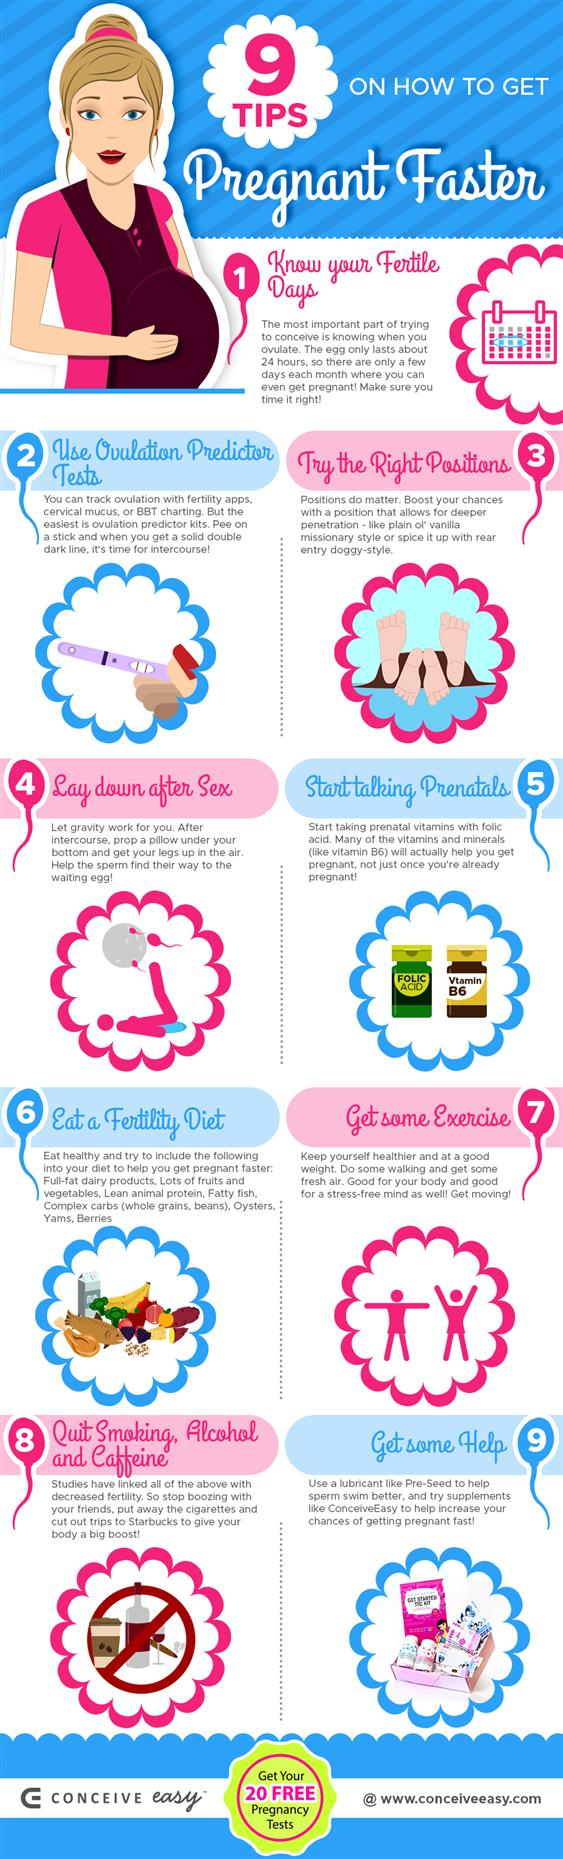 How to Get Pregnant Fast: 9 Dos and Don'ts   ConceiveEasy.com